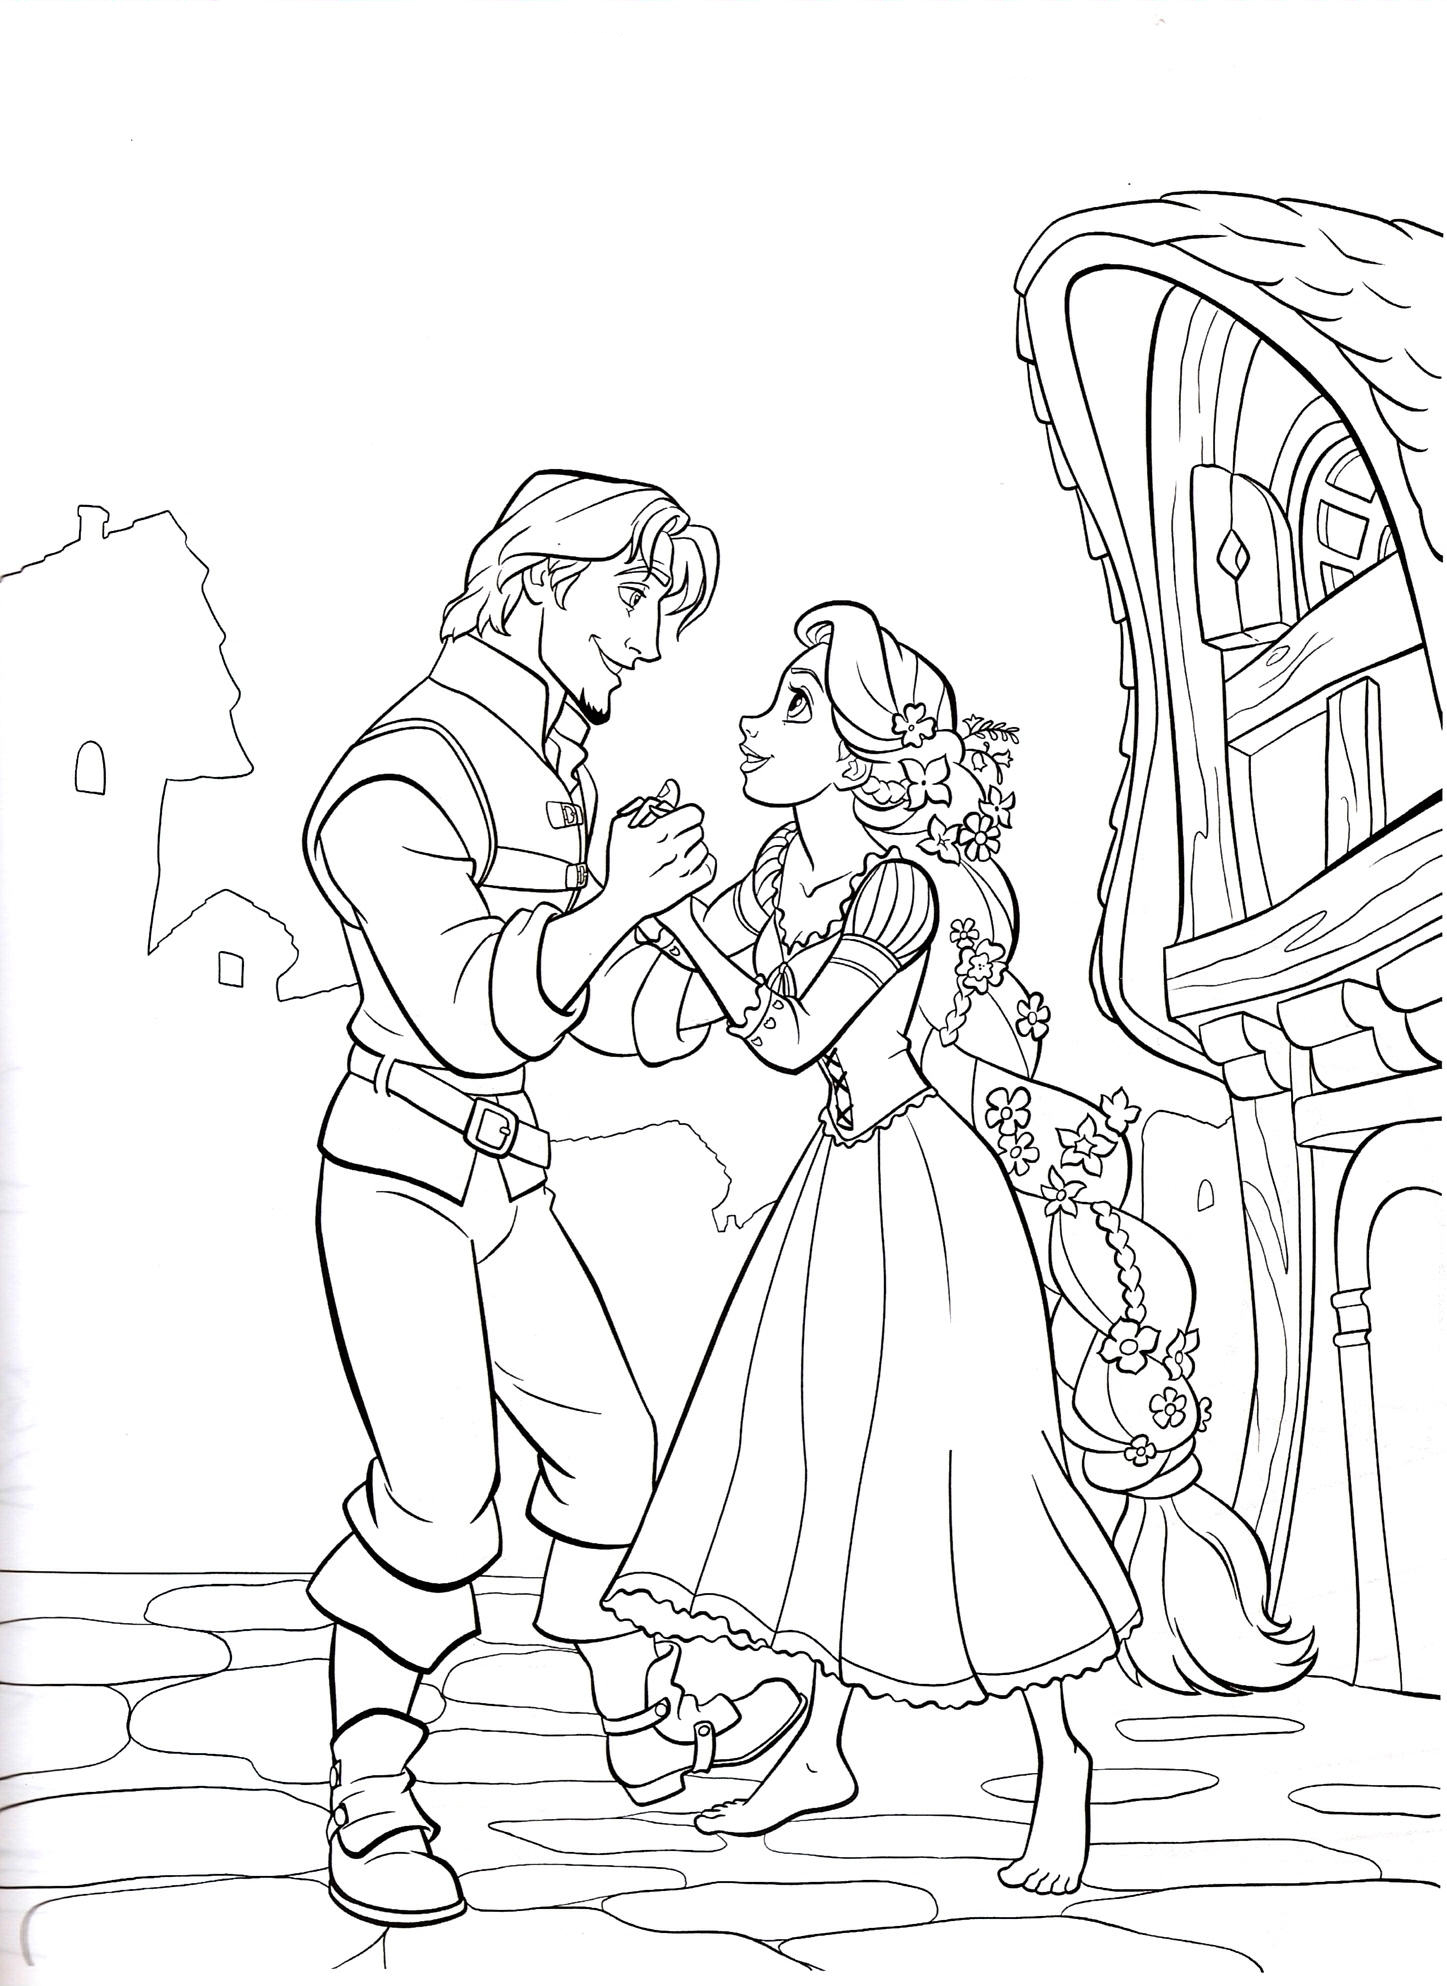 disney princess rapunzel coloring pages - rapunzel coloring pages best coloring pages for kids